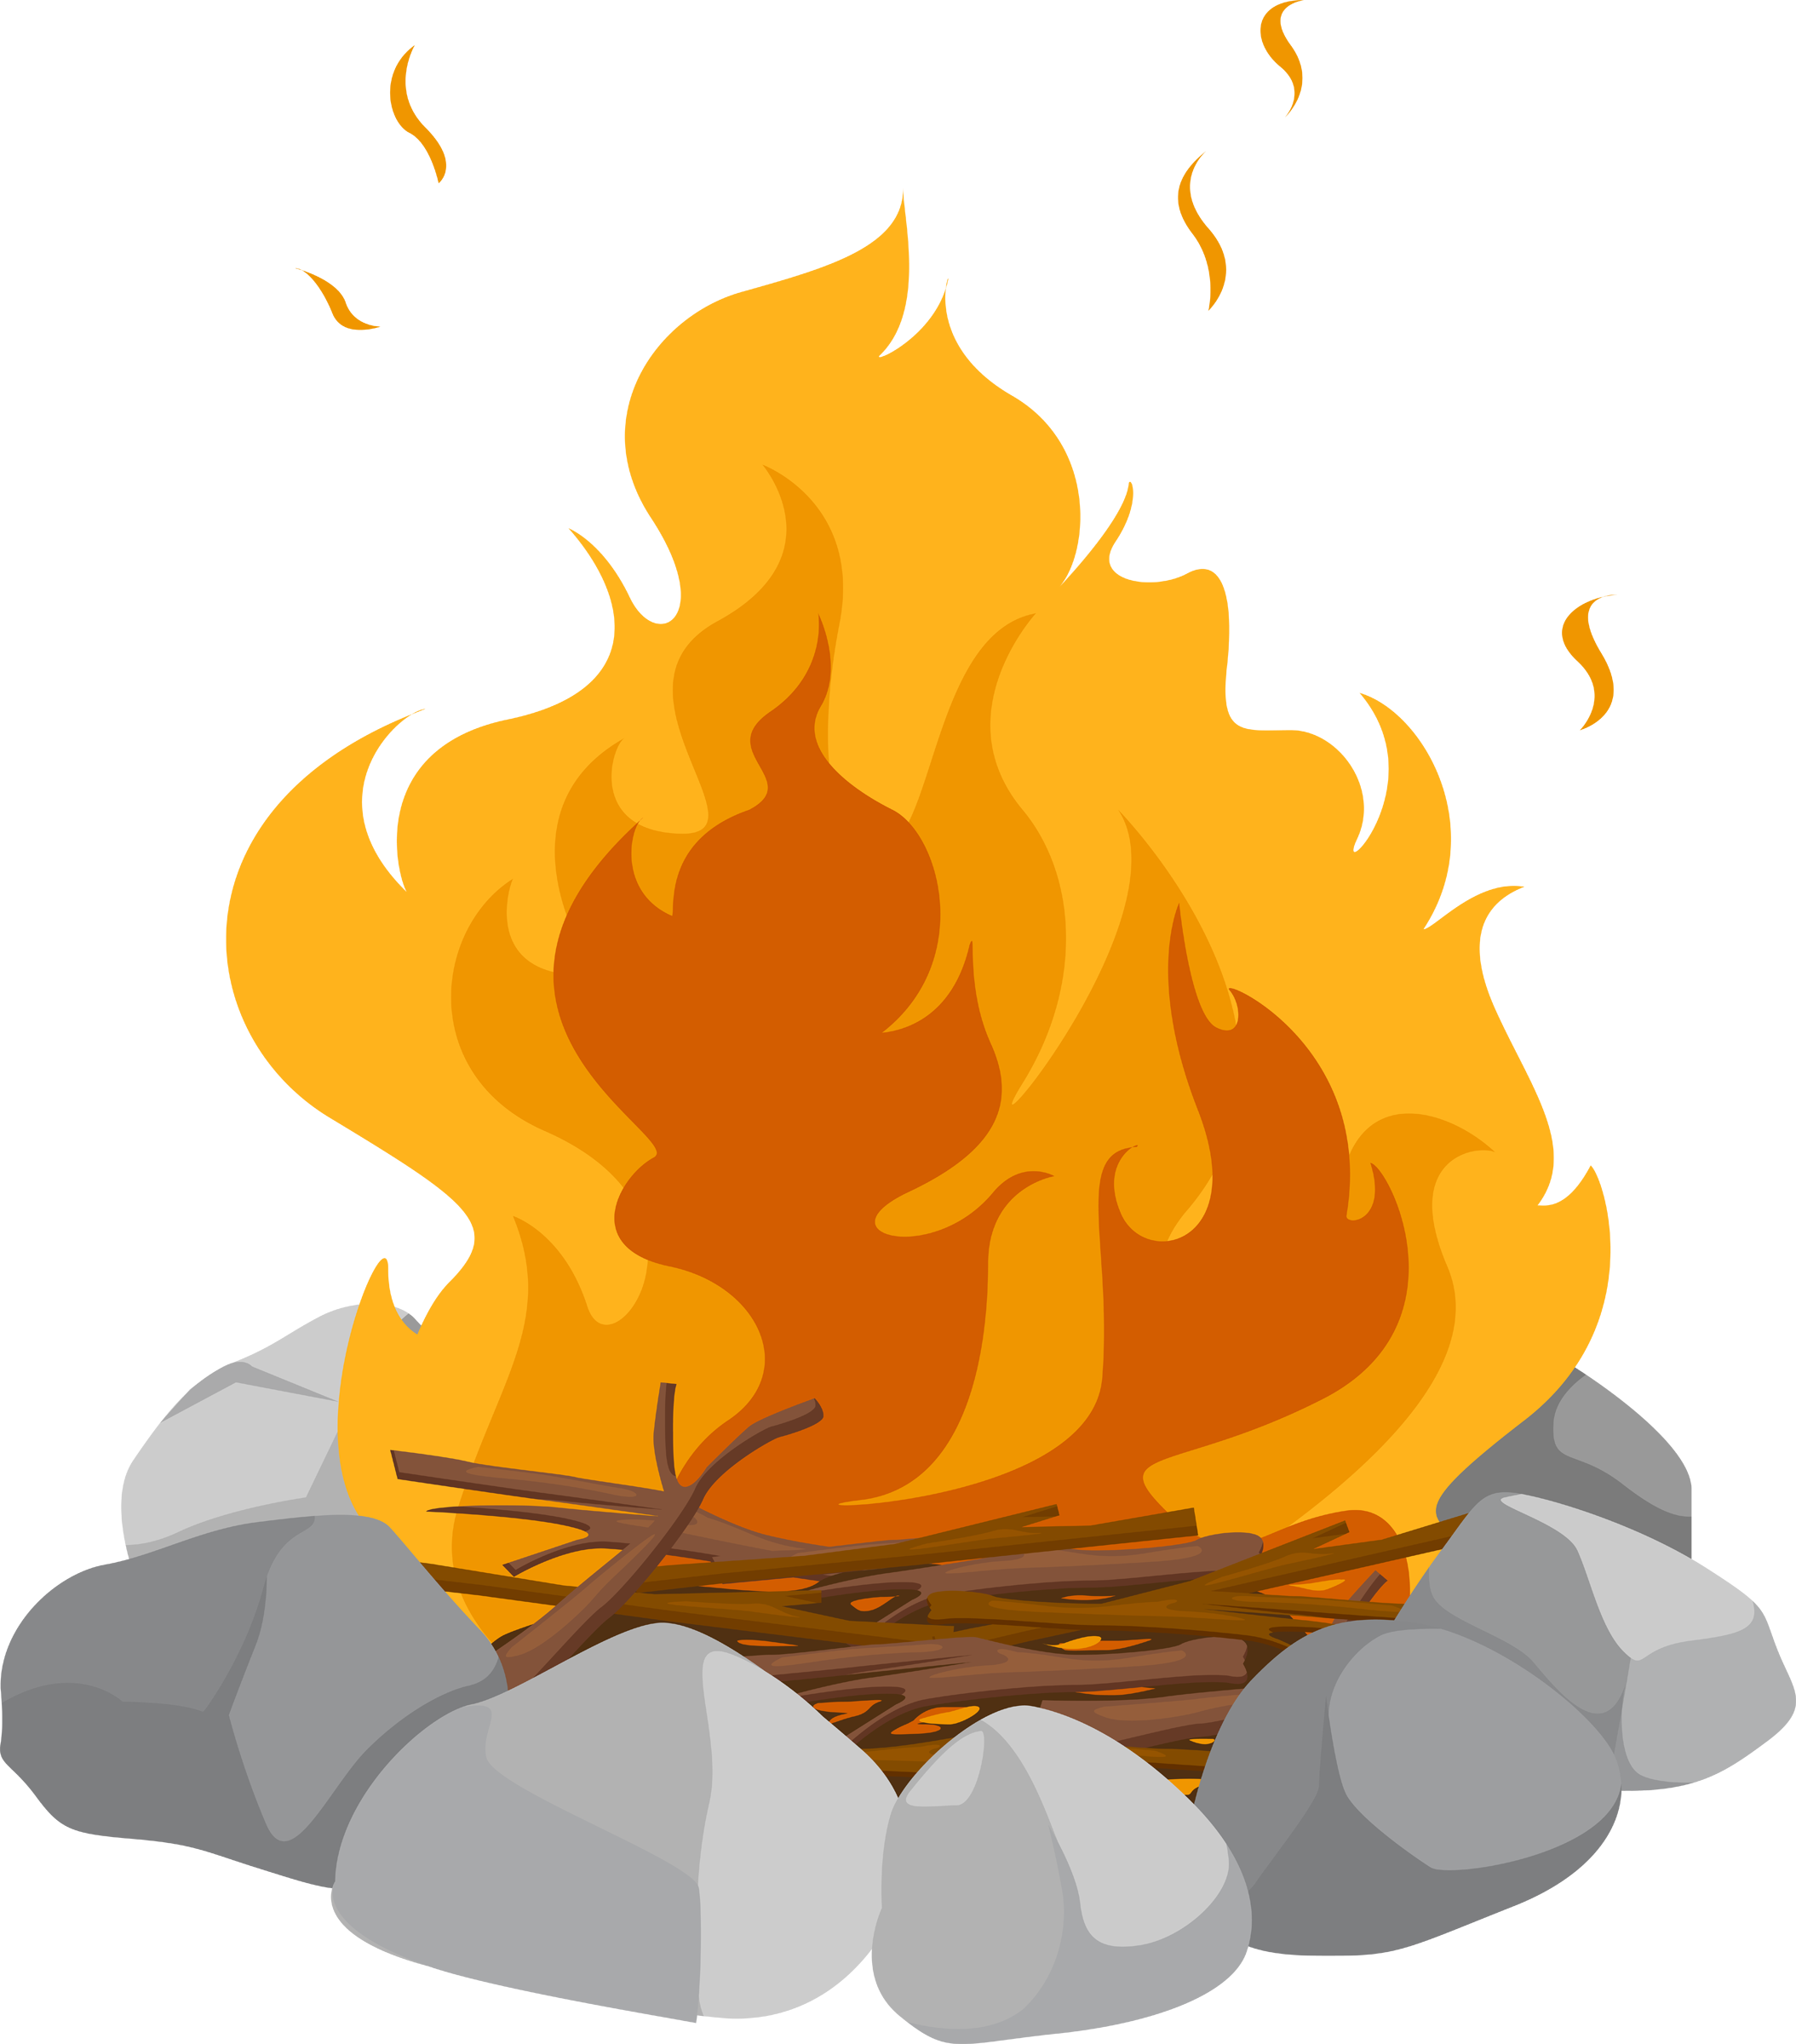 clip freeuse download Campfire clipart. Png images transparent free